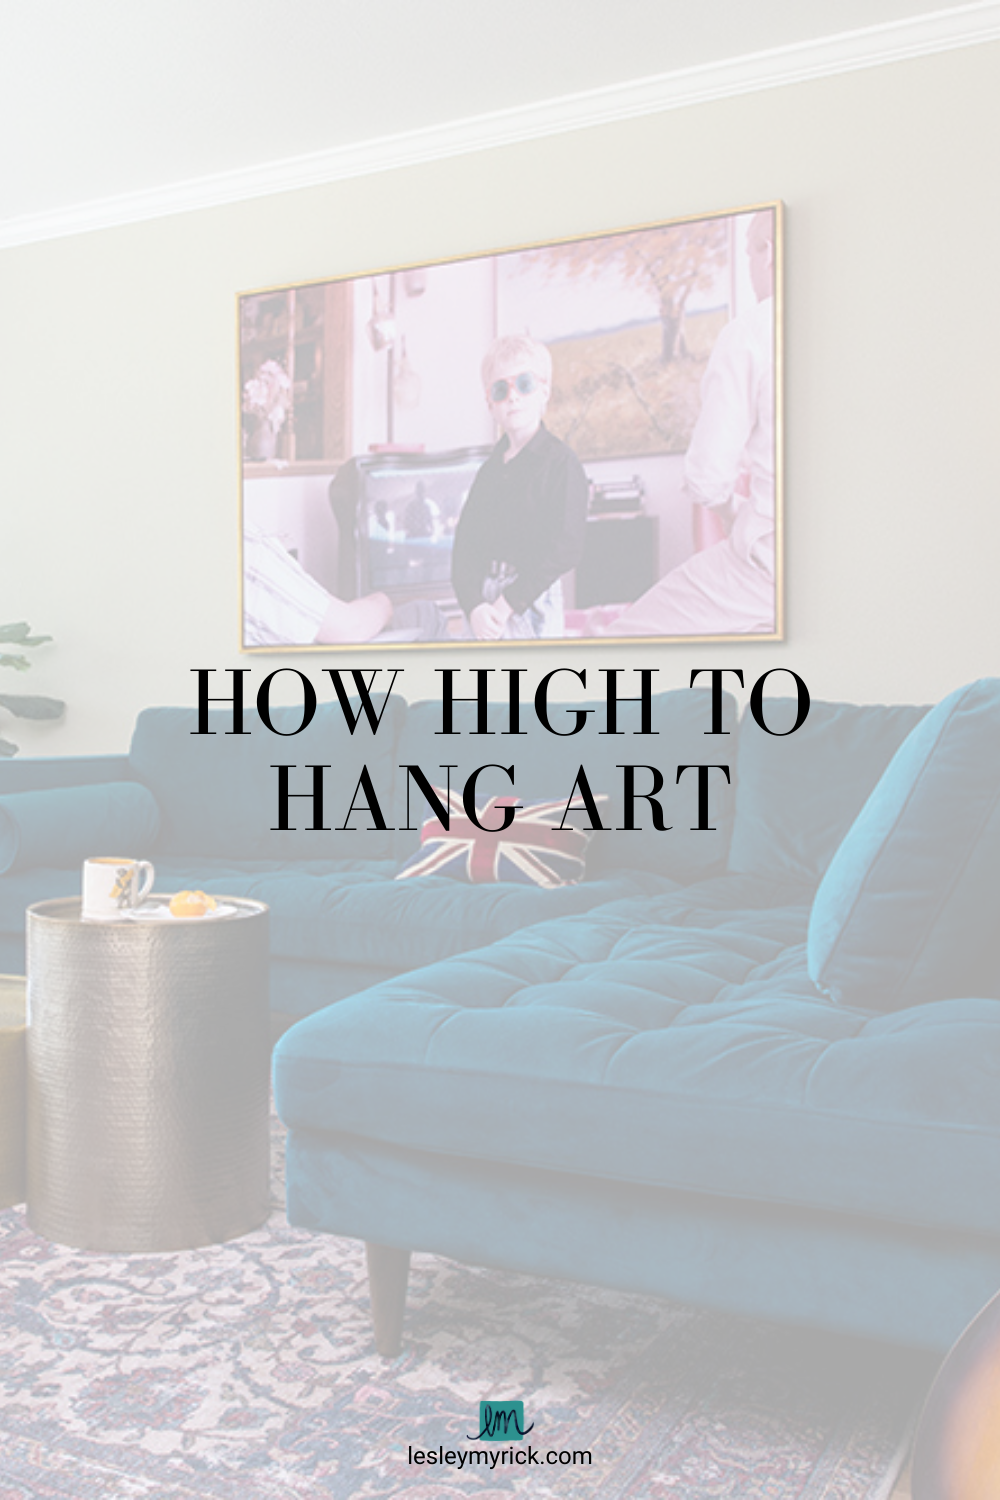 How high to hang art in your home - tips from interior designer Lesley Myrick